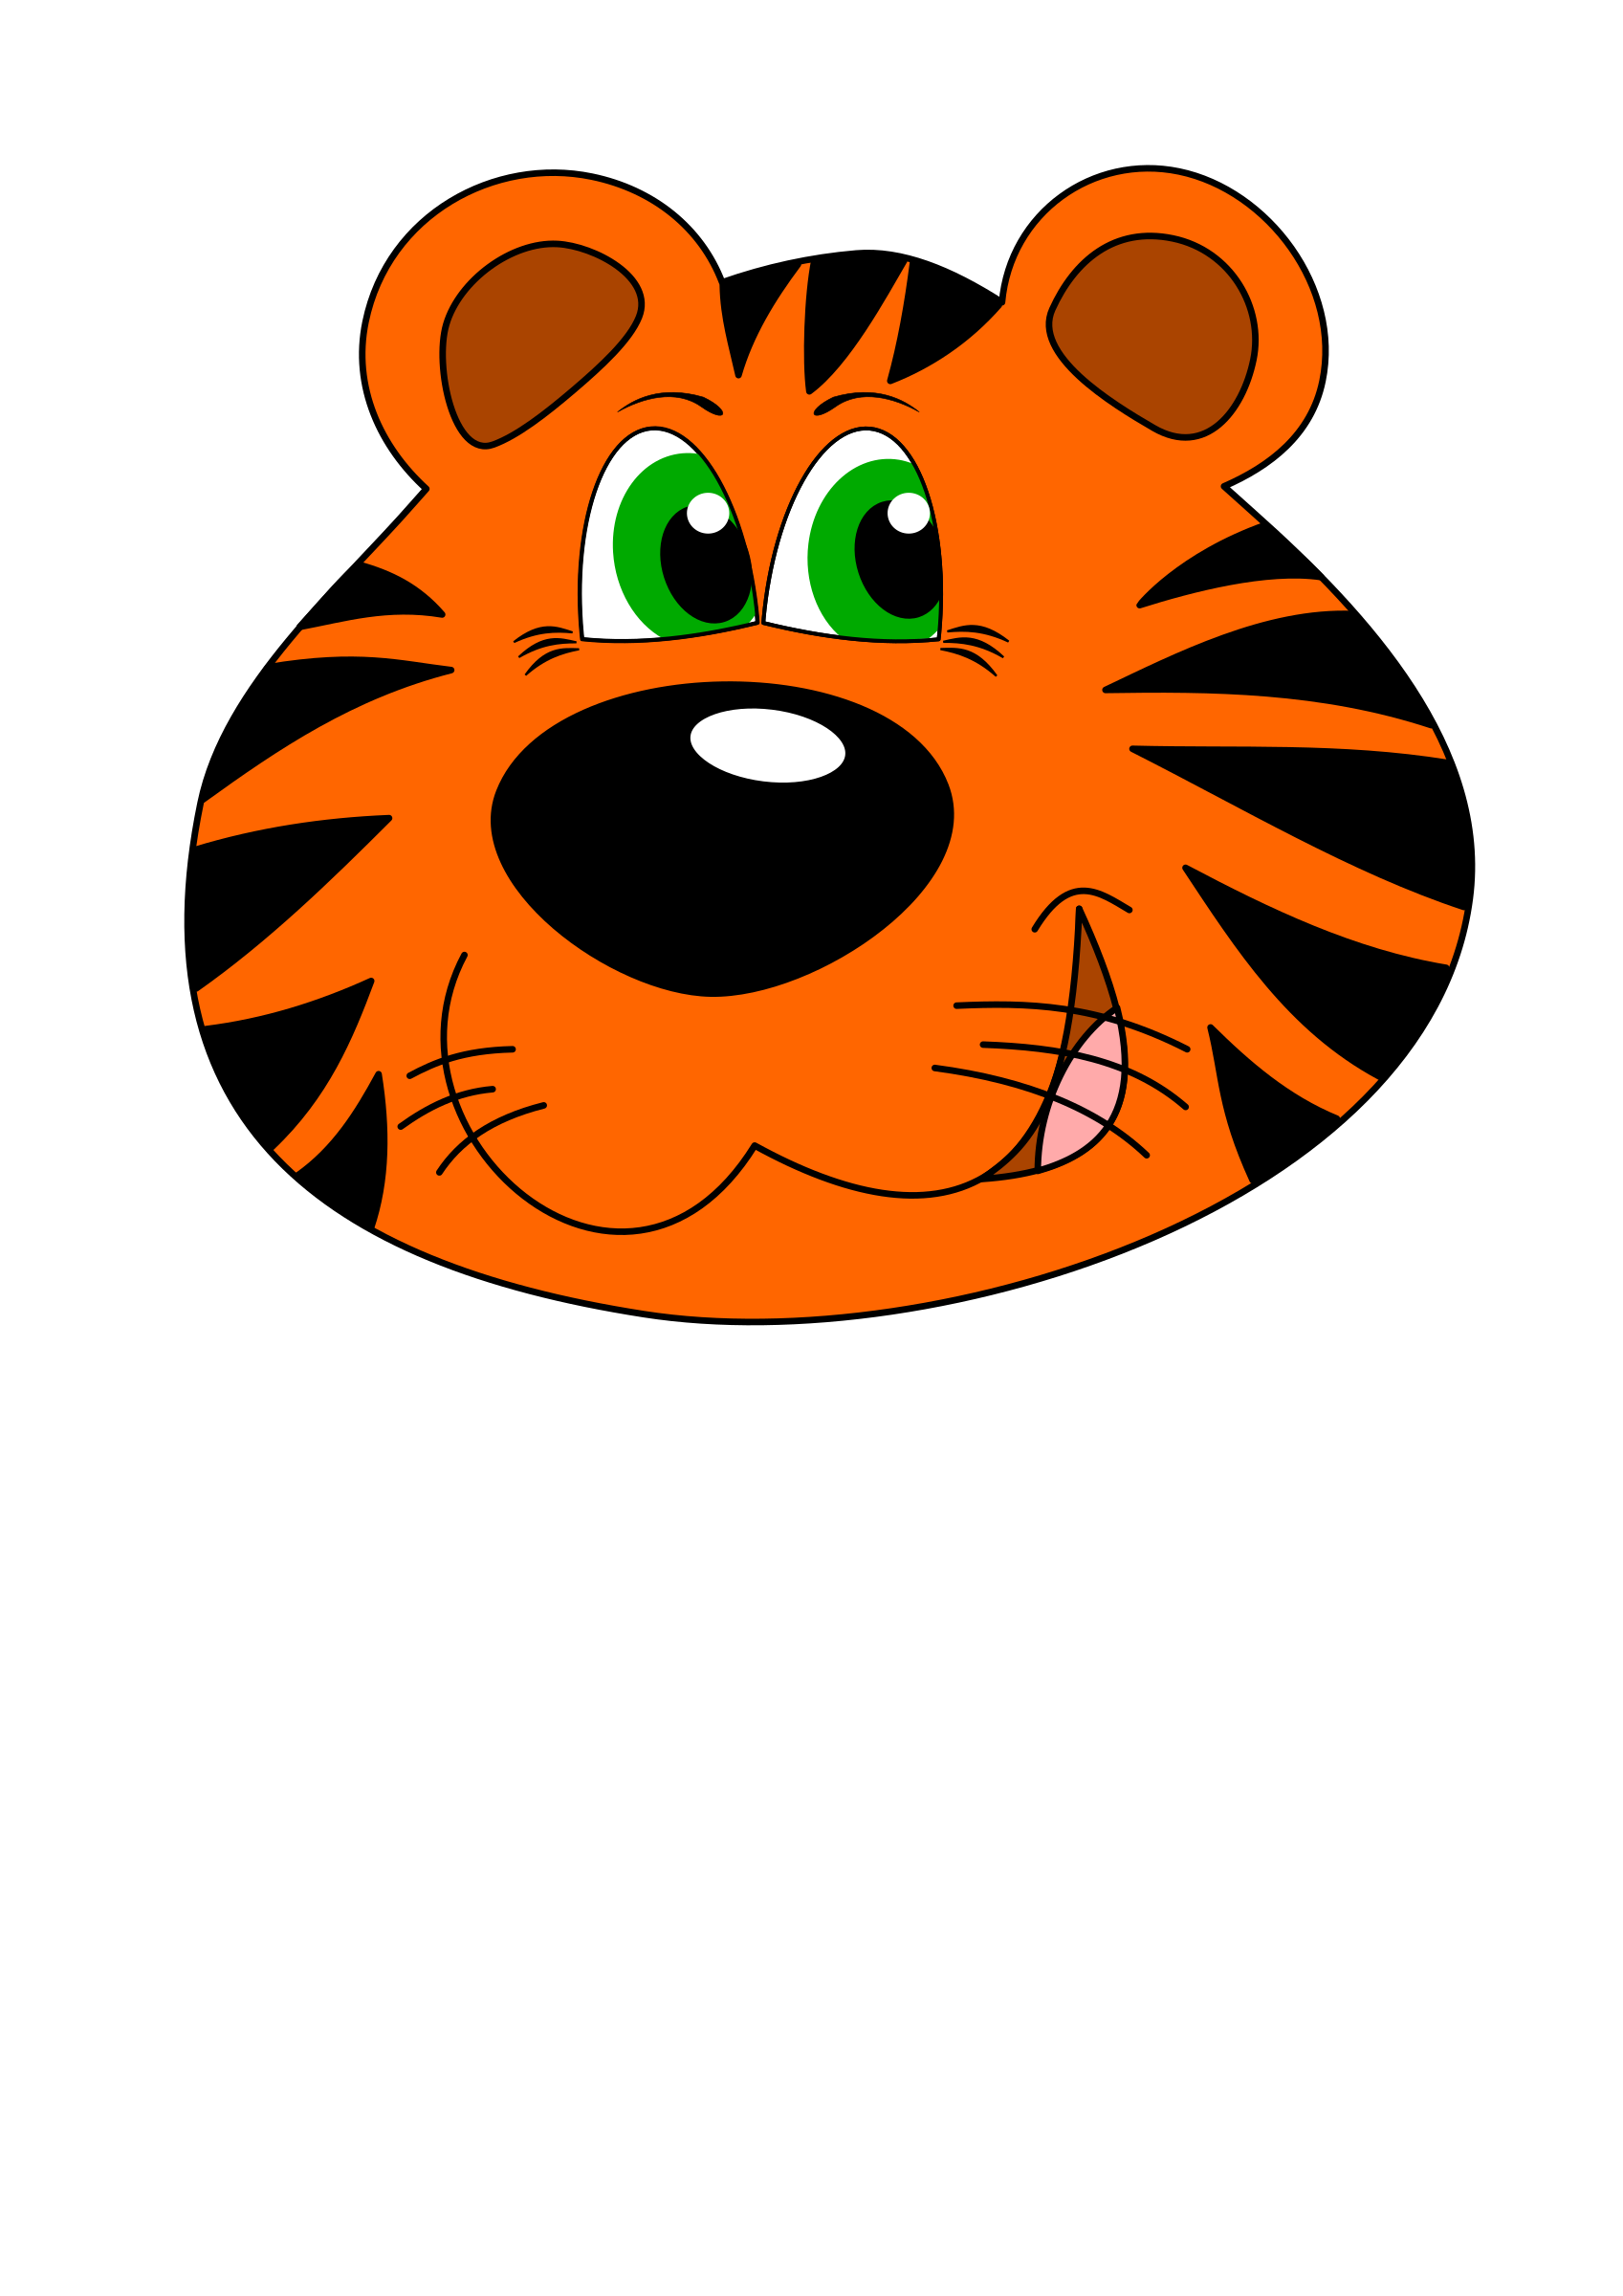 Picture Of A Cartoon Tiger - ClipArt Best